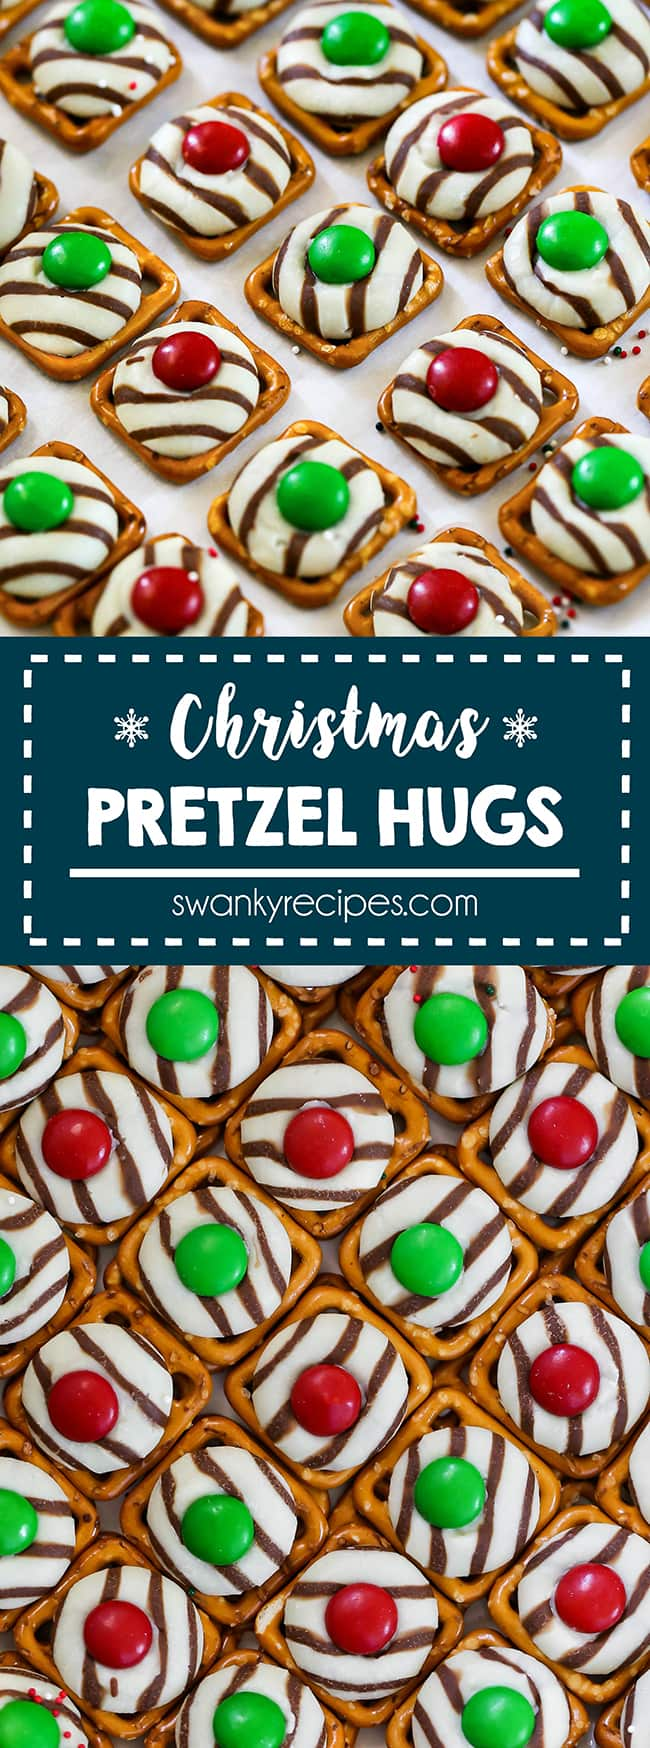 Christmas Pretzel Hug Cookies - Pretzel squares topped with a melted striped white and chocolate candy with a green or red m&m candy on top.